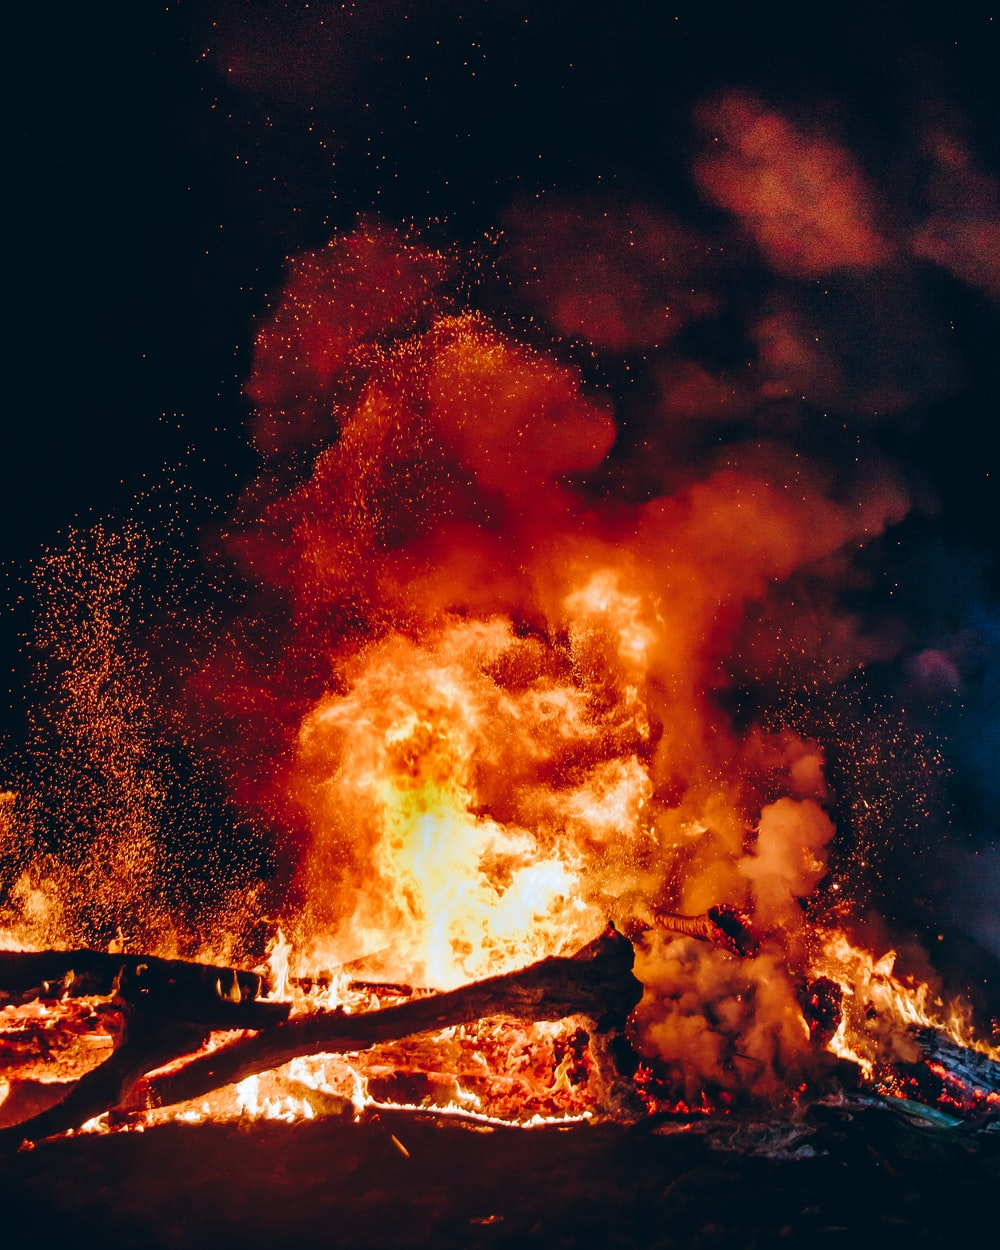 fire with black smoke during night